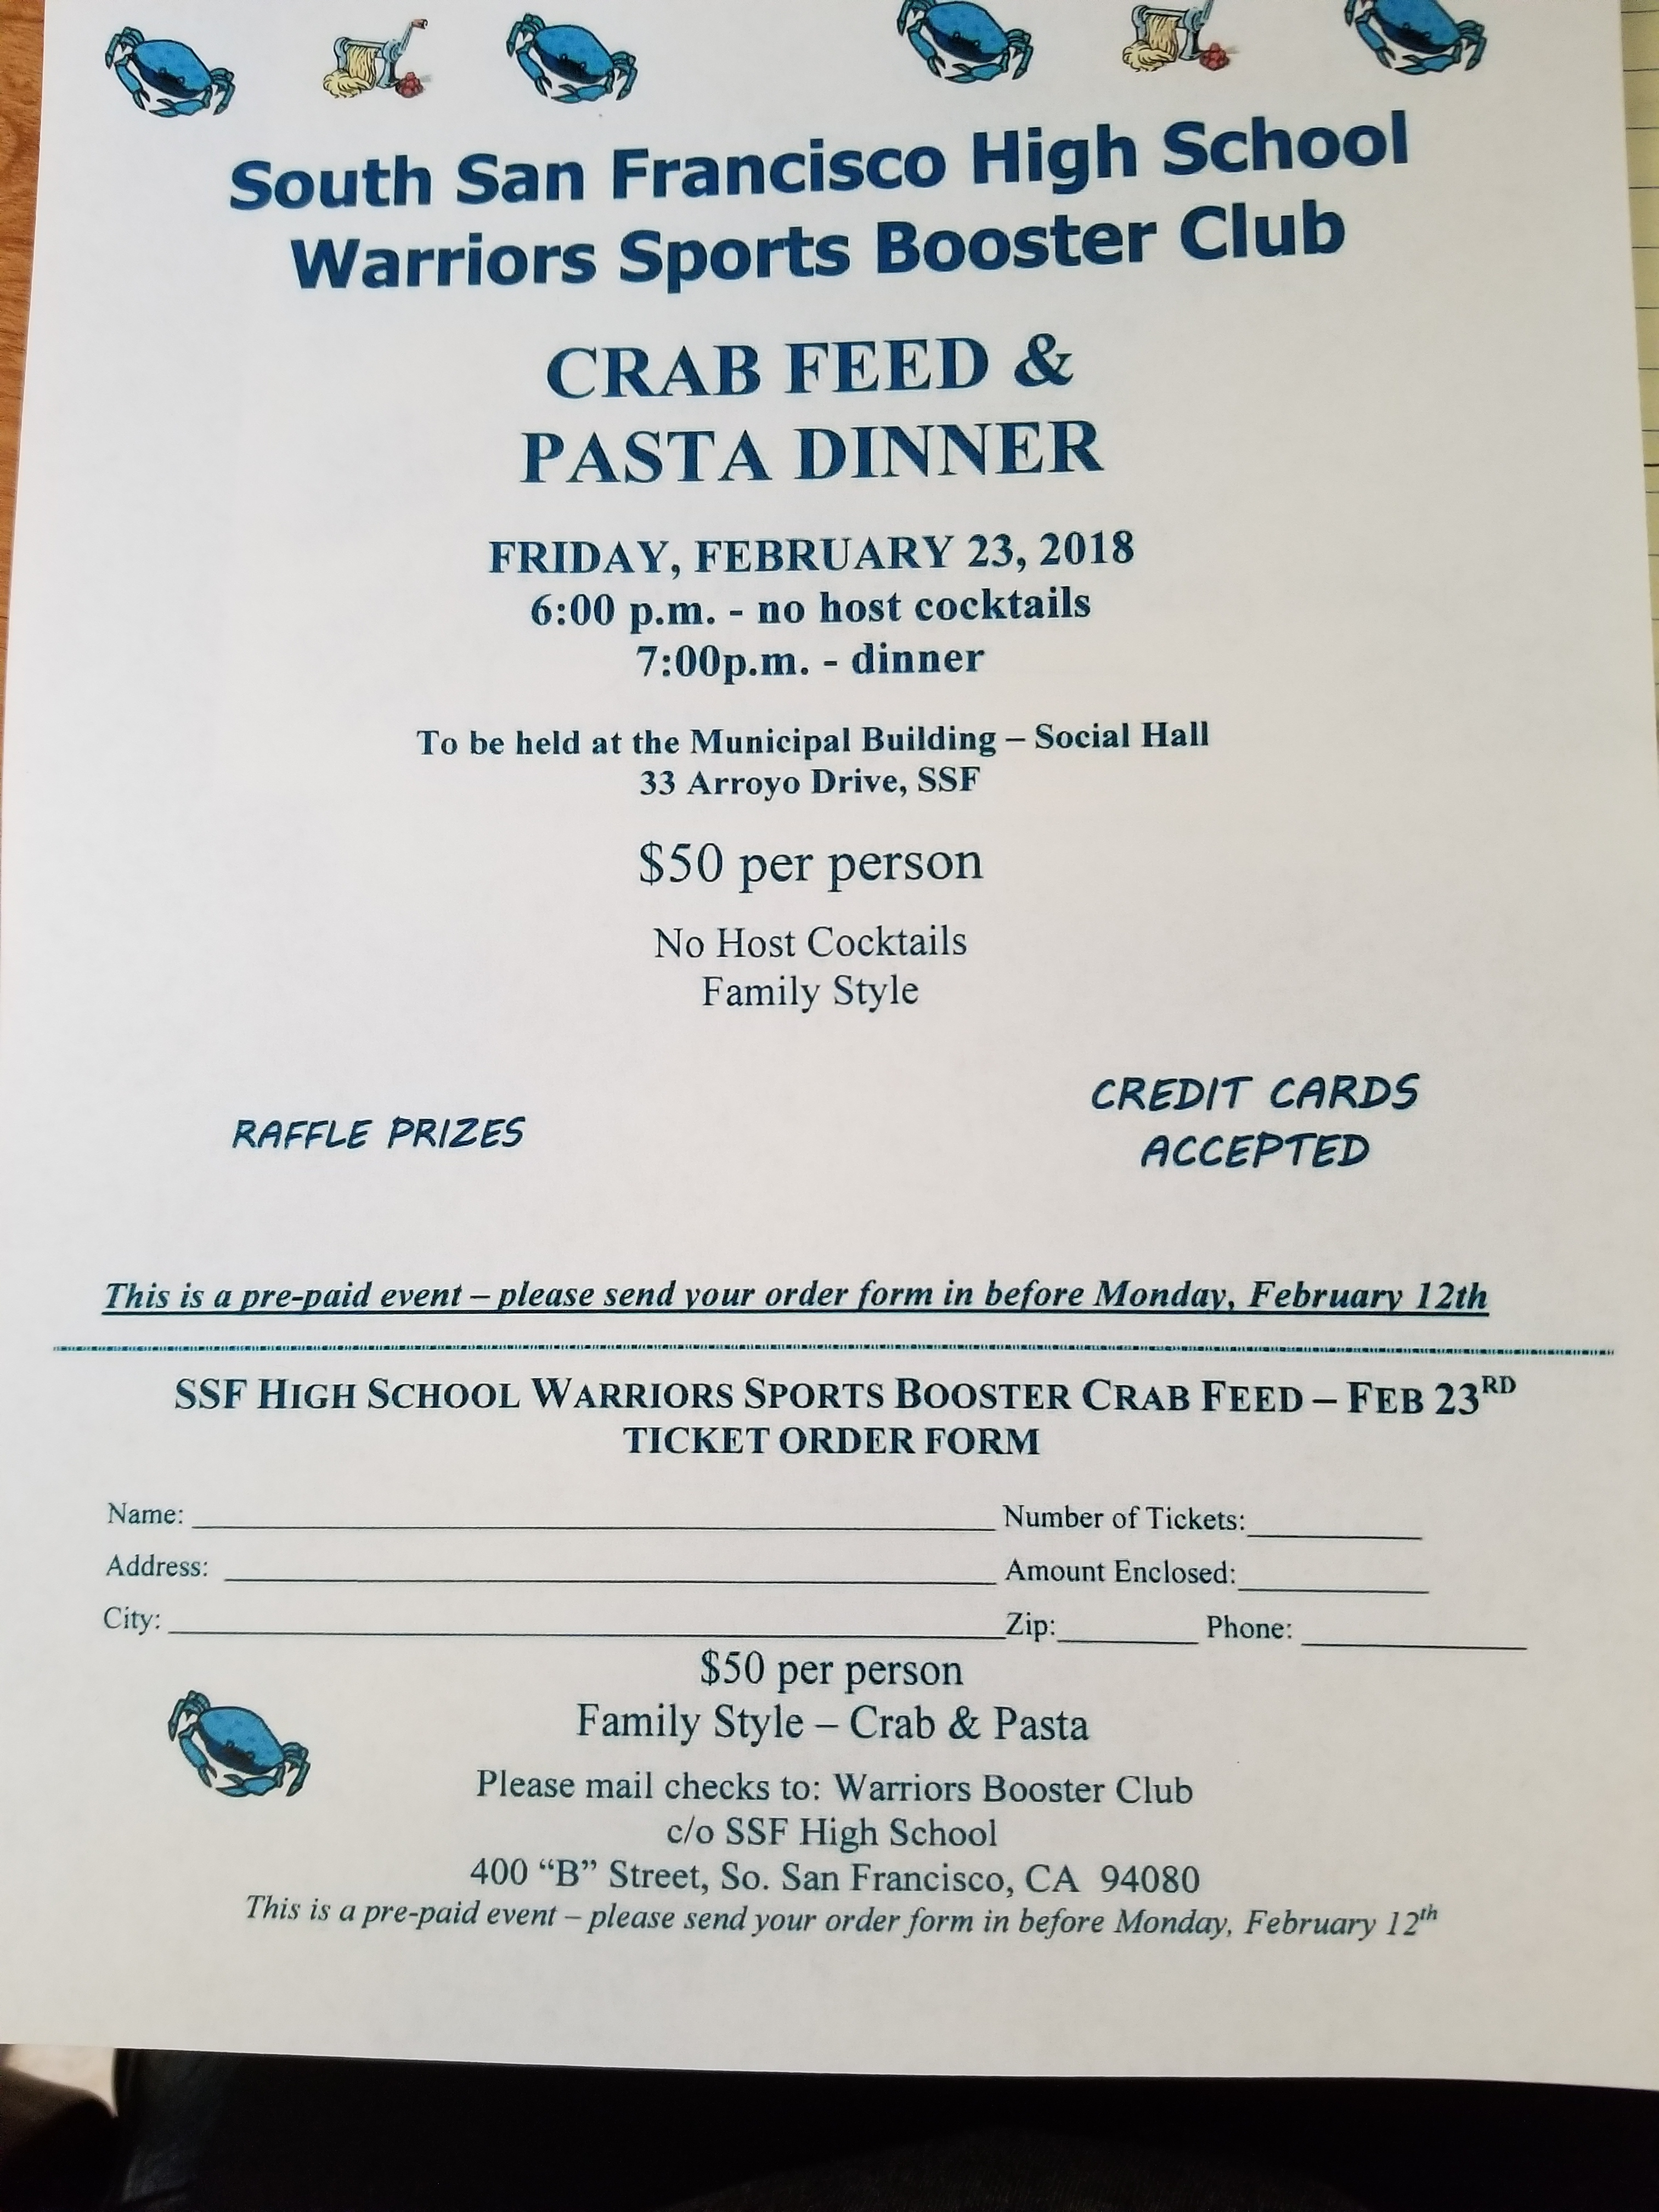 South San Francisco High School Crab Feed Set for February 23rd – Tickets on Sale Now!